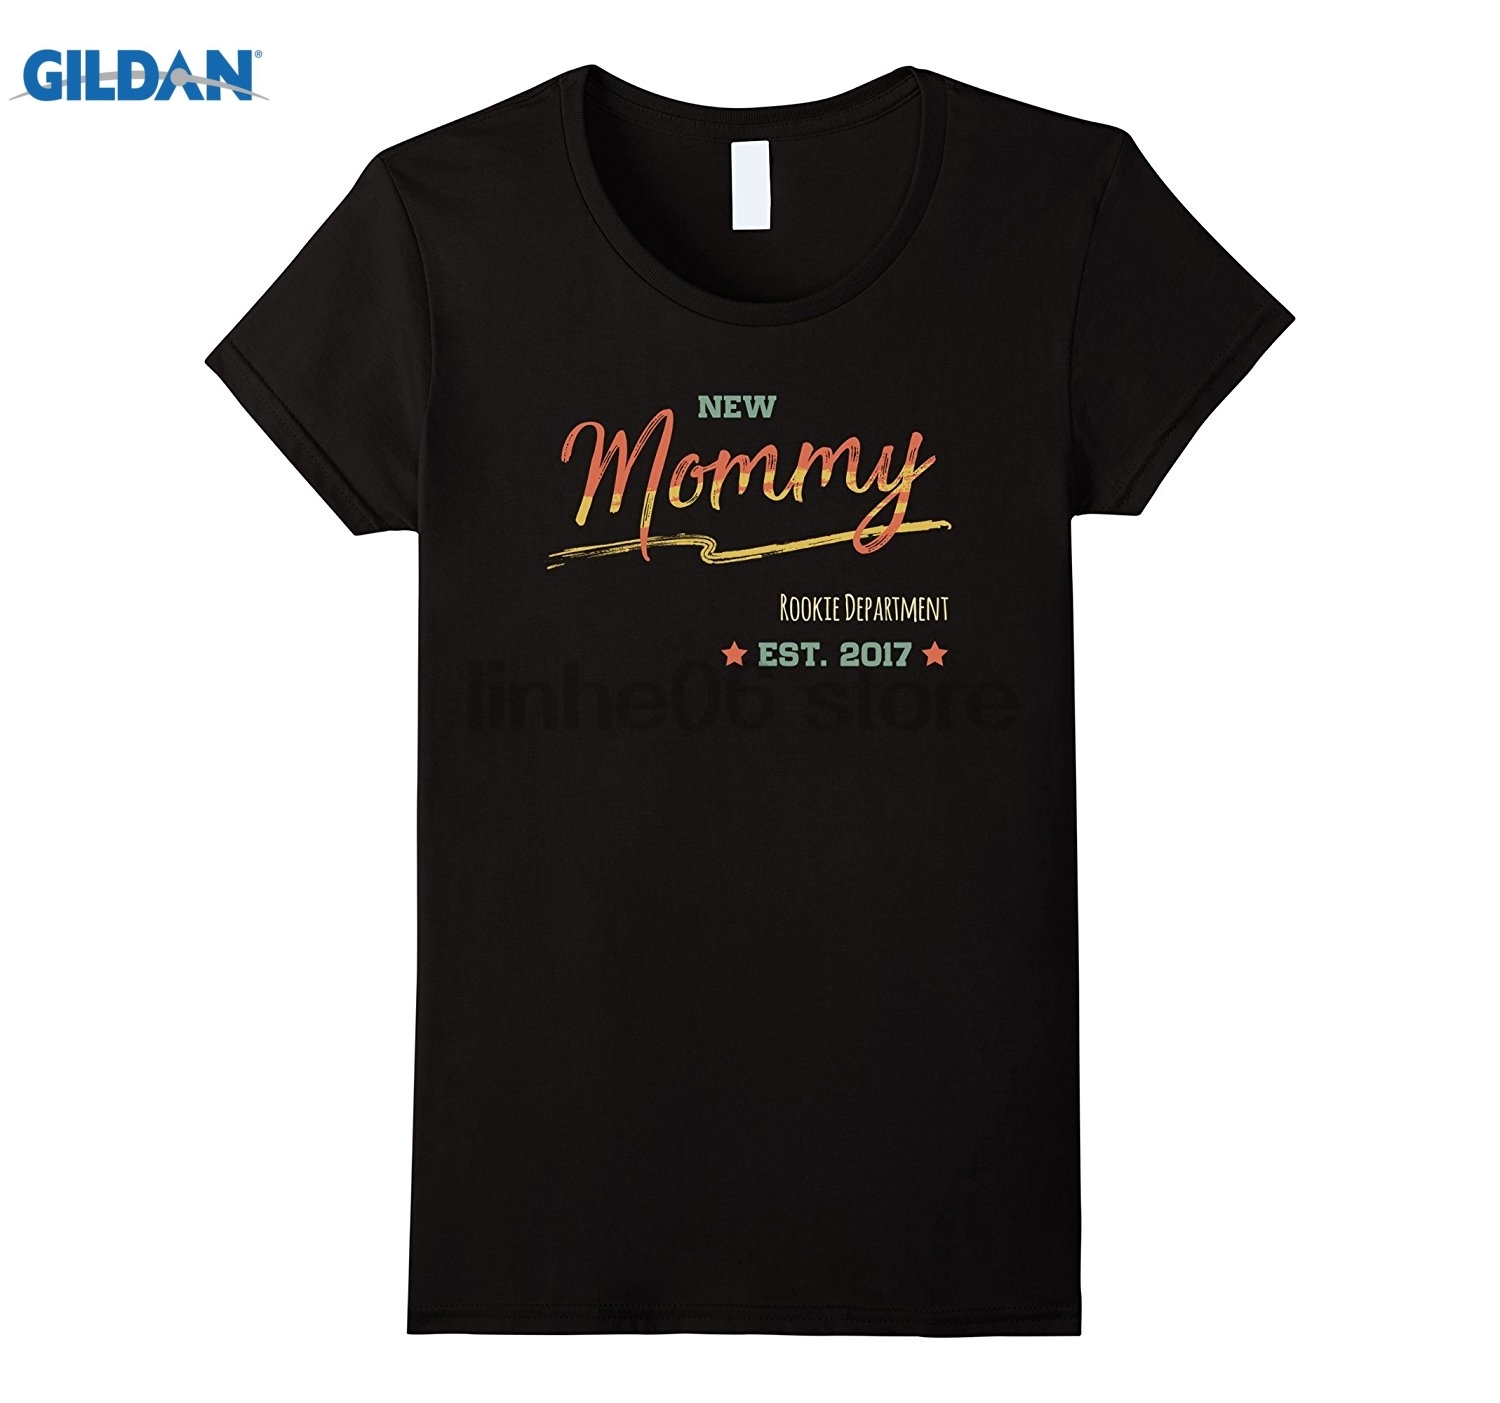 GILDAN Womens New Mommy Shirt. Mommy est 2017 Gifts Vintage Retro Art Mothers Day Ms. T-shirt